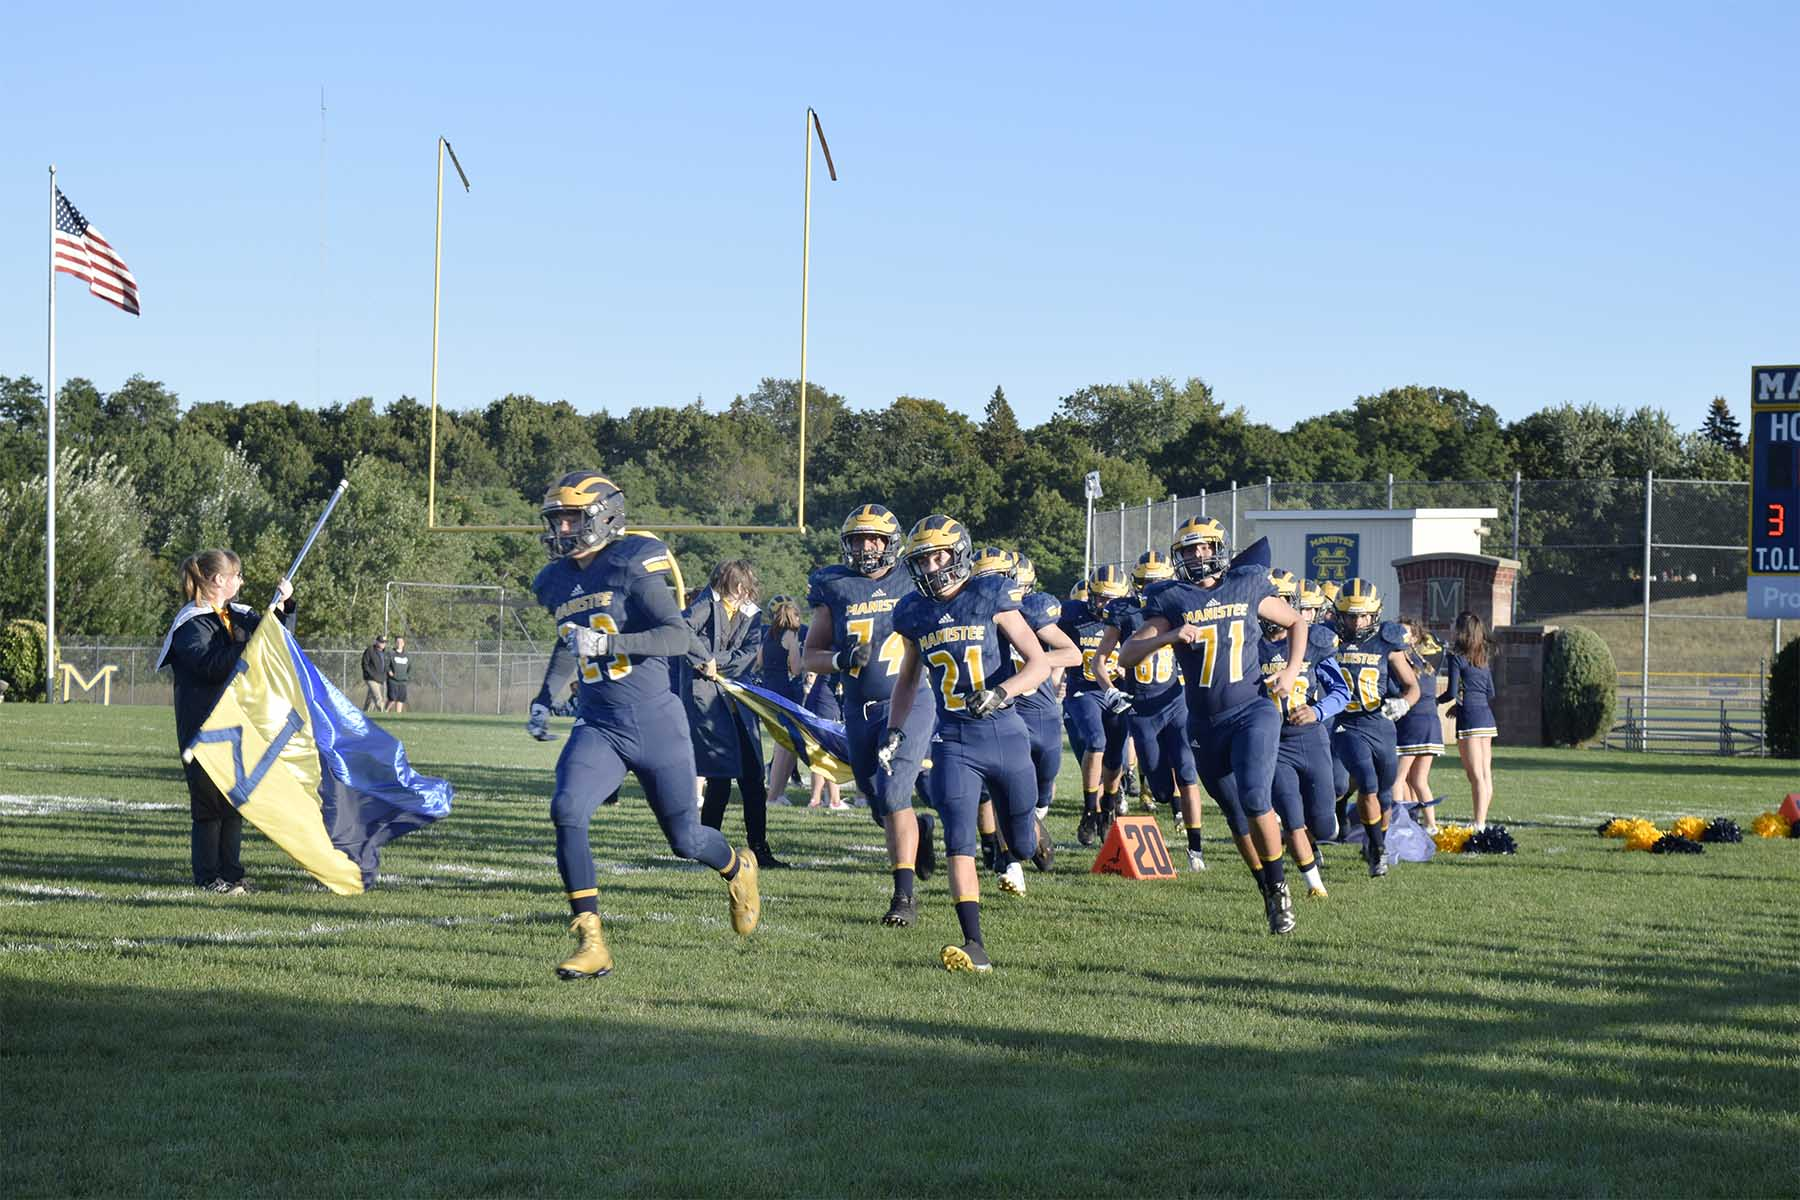 photo of Manistee high football team running on chippewa field